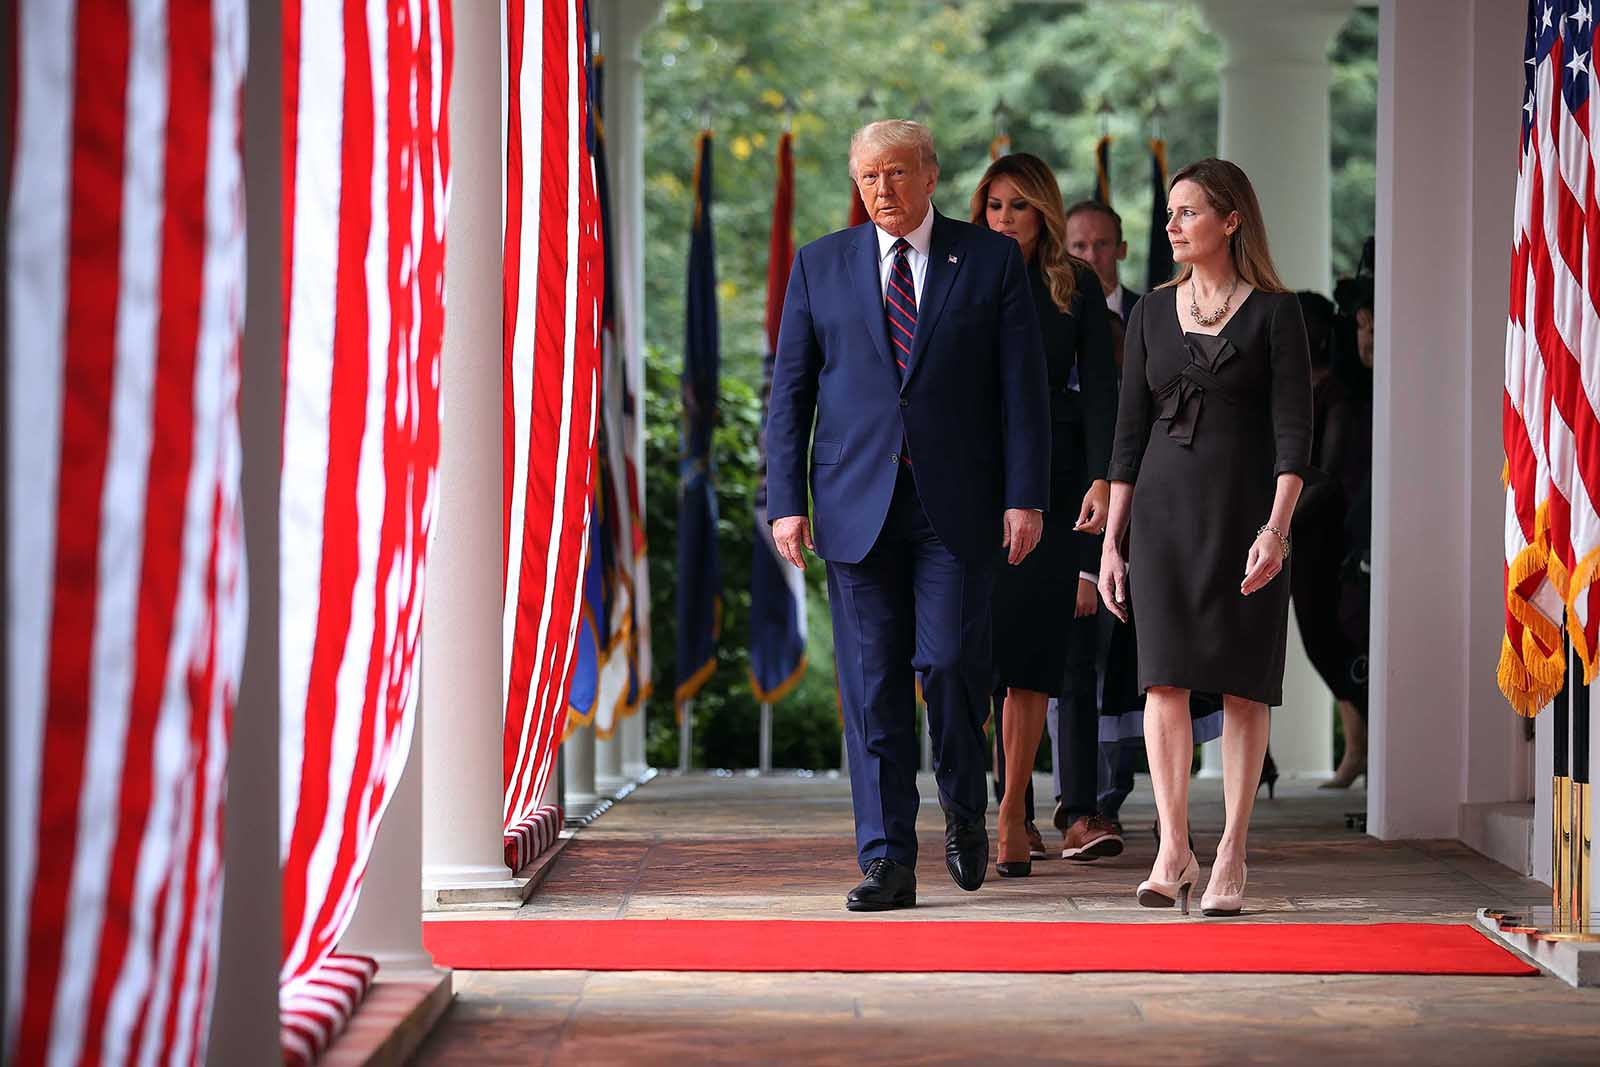 US President Donald Trump, first lady Melania Trump and 7th U.S. Circuit Court Judge Amy Coney Barrett, walk into the Rose Garden before Trump announces Barrett as his nominee to the Supreme Court at the White House September 26, in Washington.